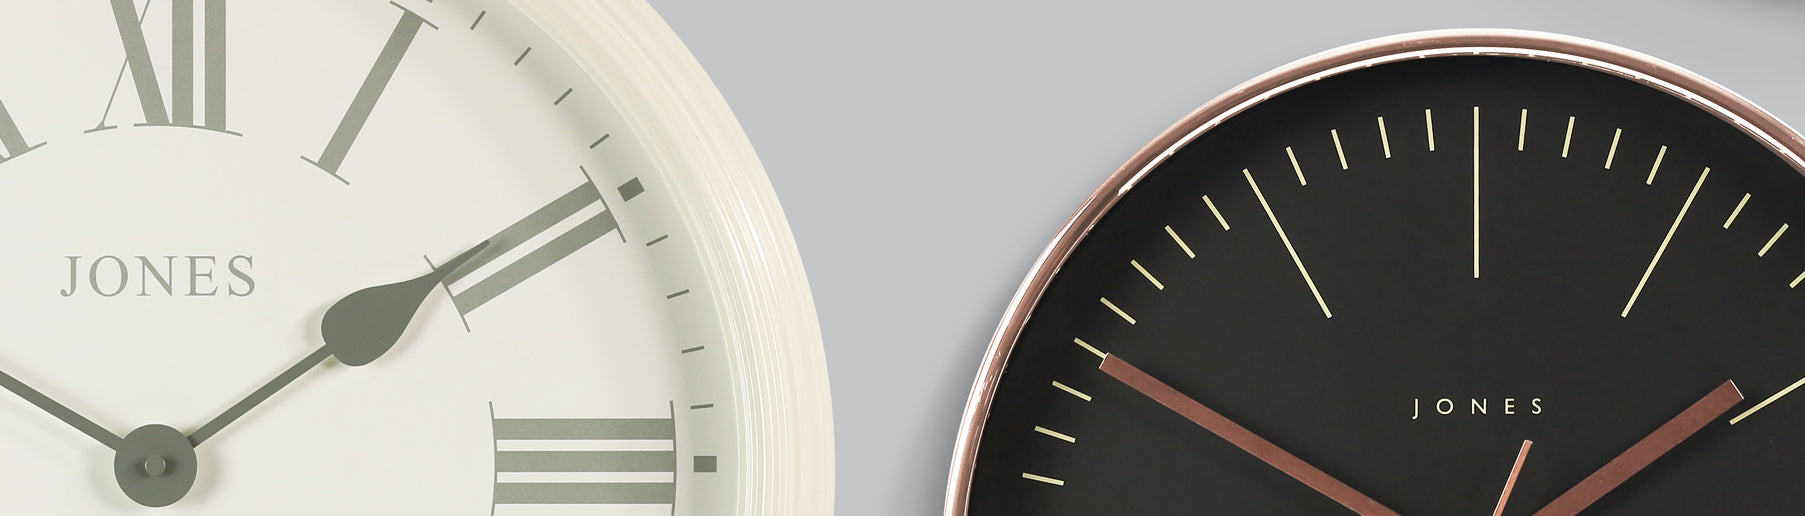 At Jones Clocks we design and create on-trend clocks to add the finishing touch to your décor.